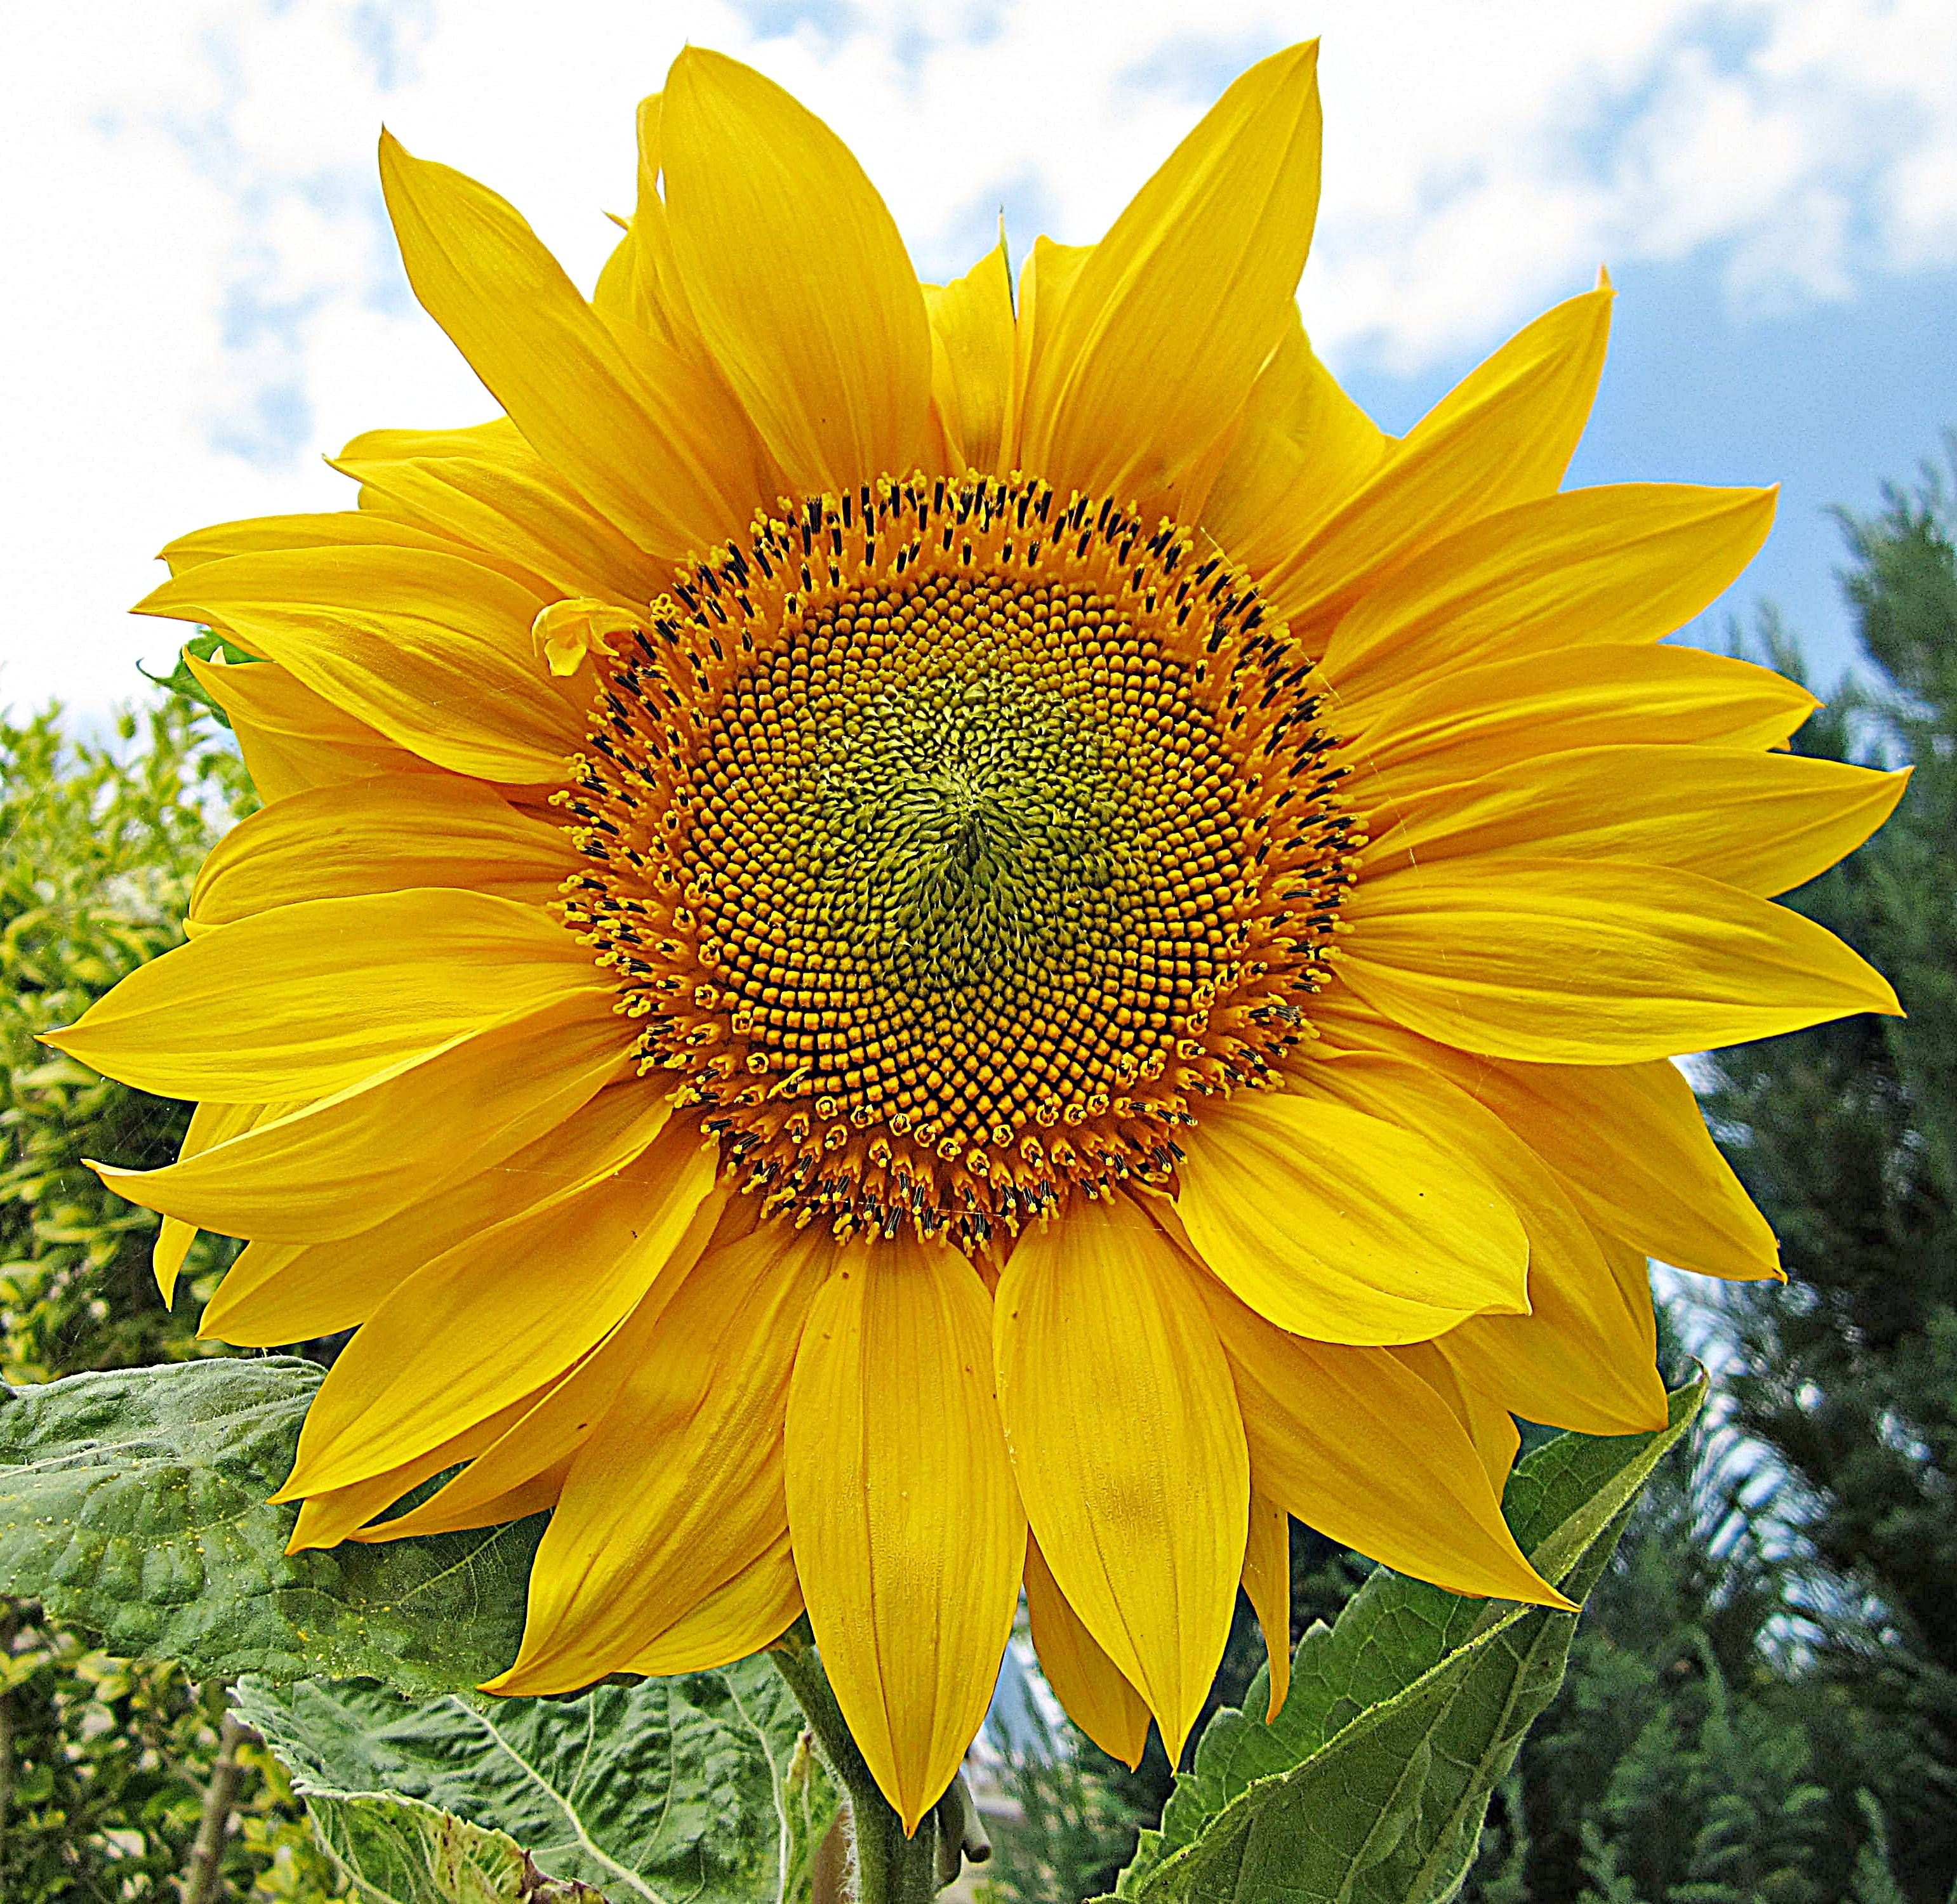 Sunflower So Vibrant They Re Just Like A Mini Sun Sunflower Pictures Outdoor Plants Plants